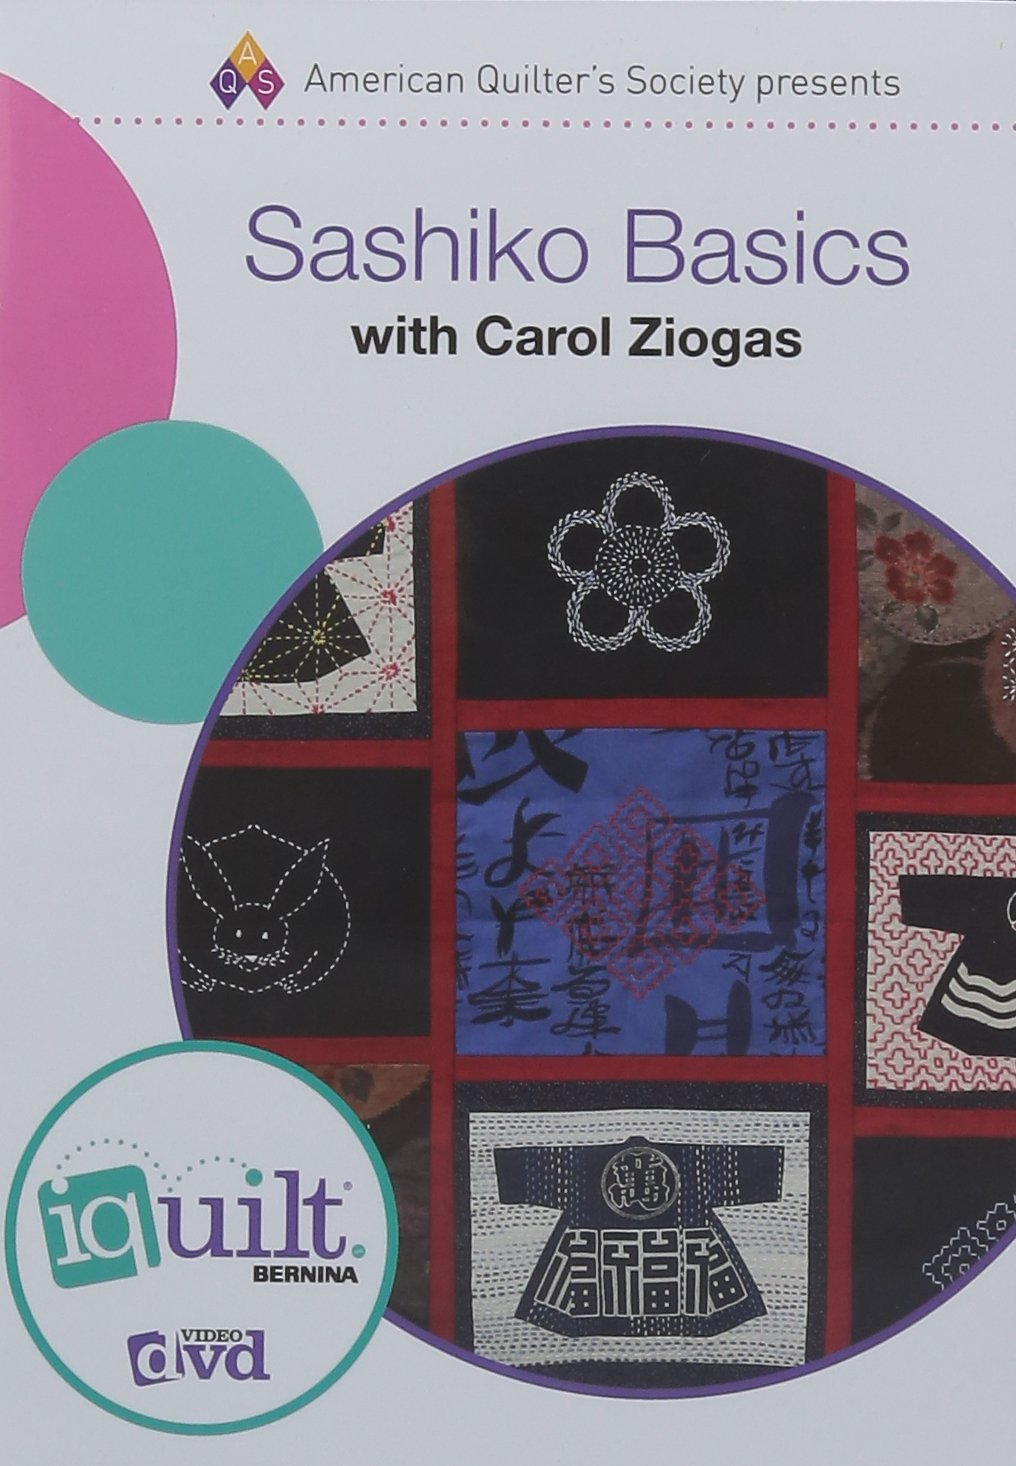 DVD - Sashiko Basics - Complete iquilt Class (Iquilts: American Quilter's Society Presents)